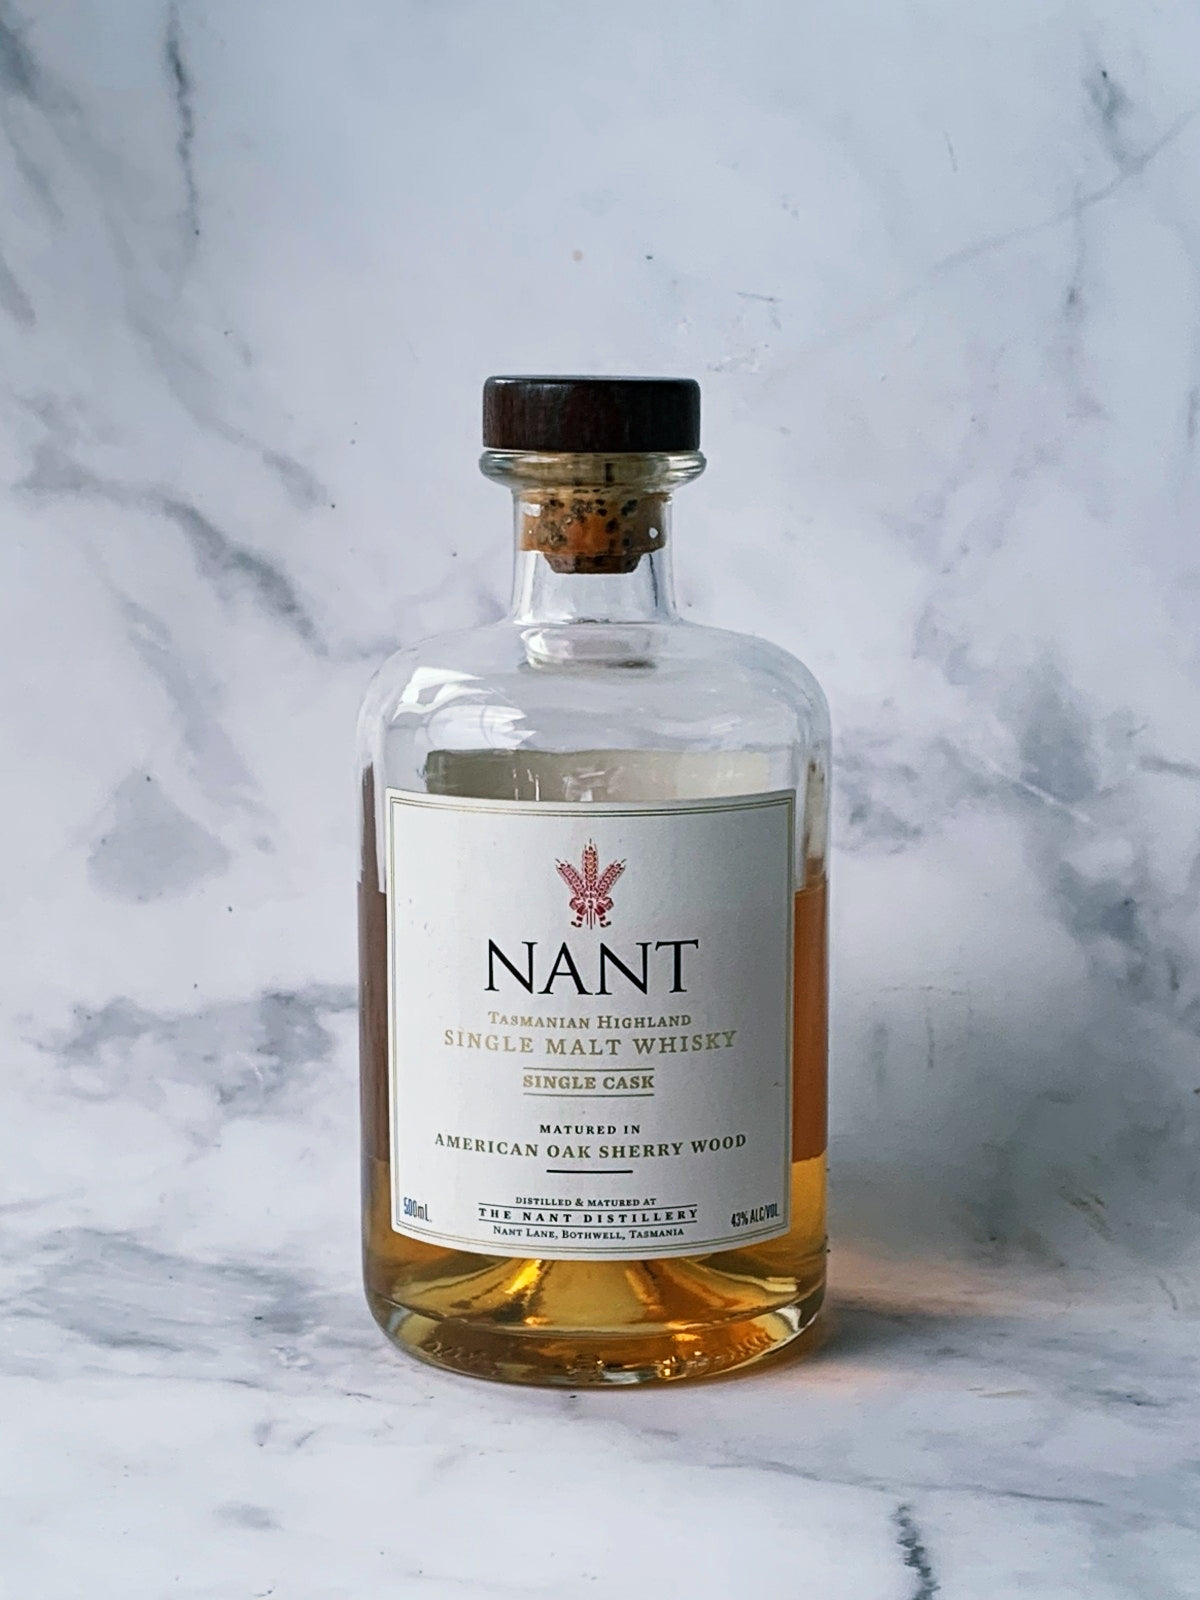 Nant Single Malt Sherry Wood (50ml serve)